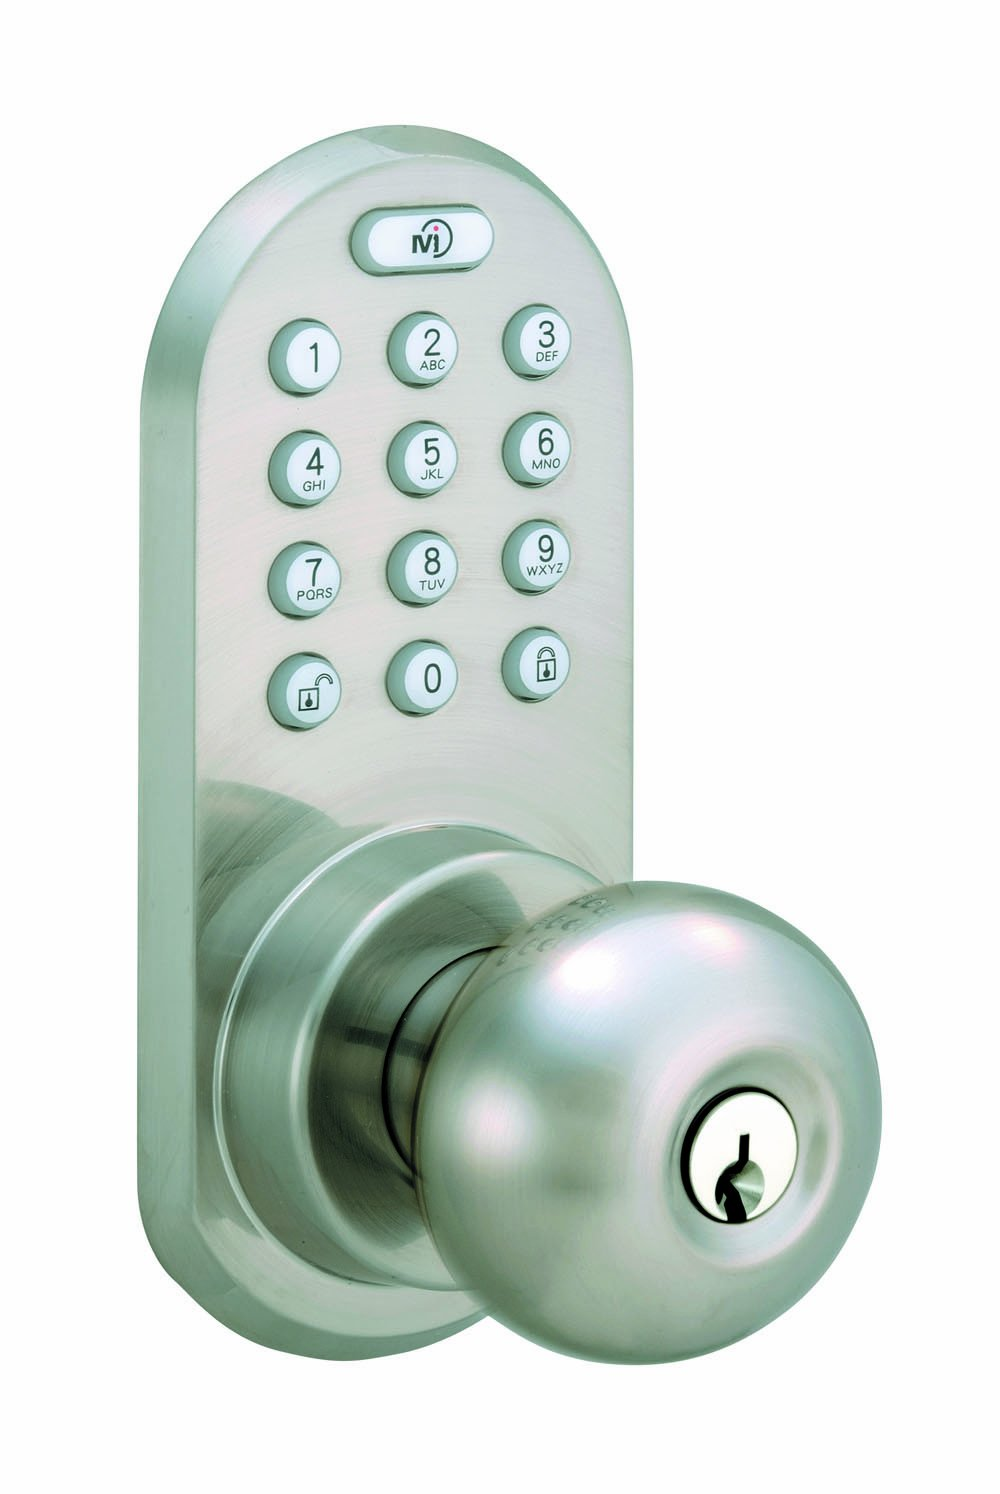 MORNING INDUSTRY INC QKK-01SN 3-In-1 Remote Control & Touchpad Doorknob, Satin Nickel